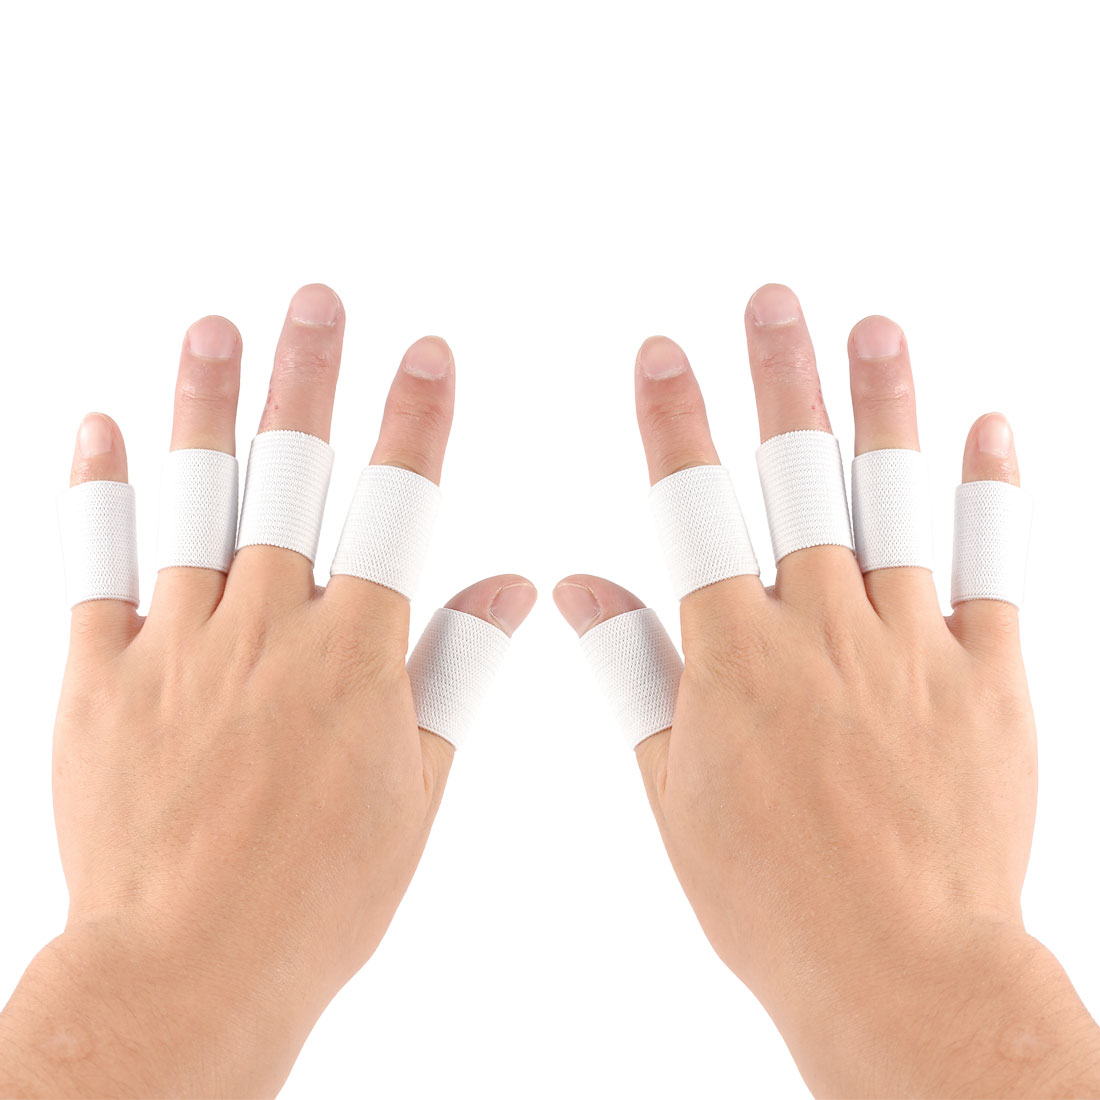 10 Pcs White Elastic Fingerband Sports Athletic Tennis Finger Protector